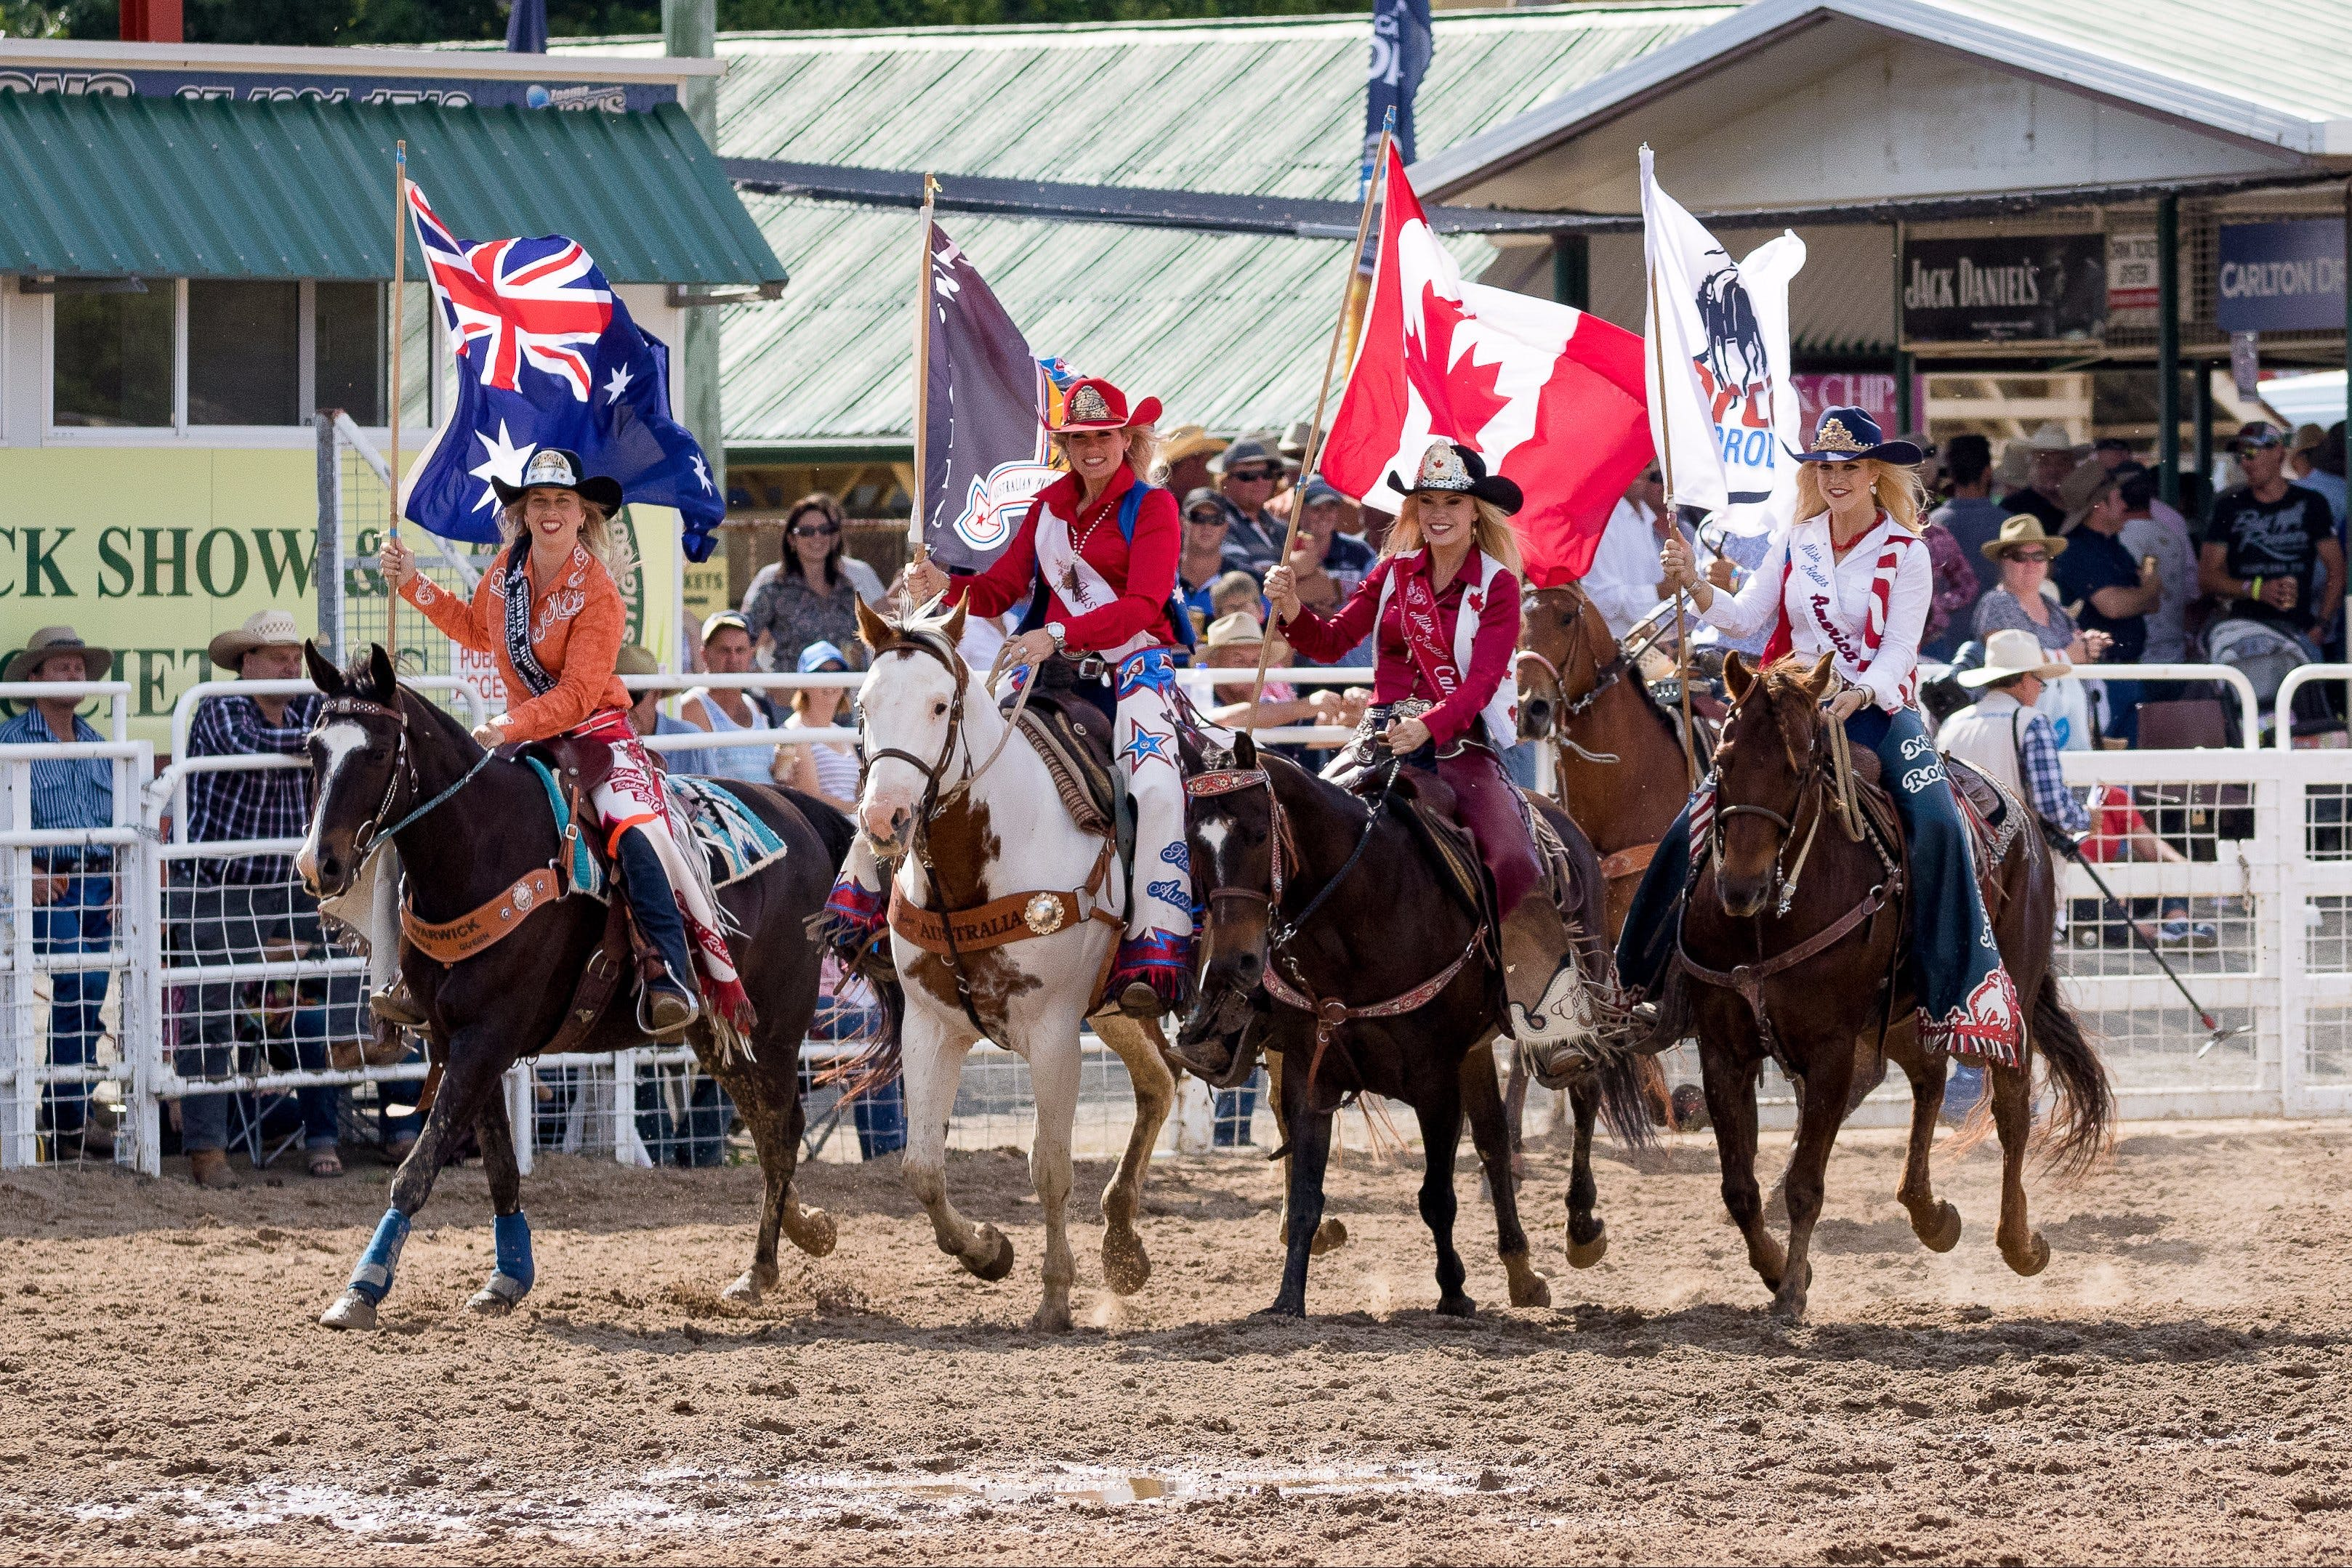 Warwick Rodeo National APRA National Finals and Warwick Gold Cup Campdraft - Yarra Valley Accommodation